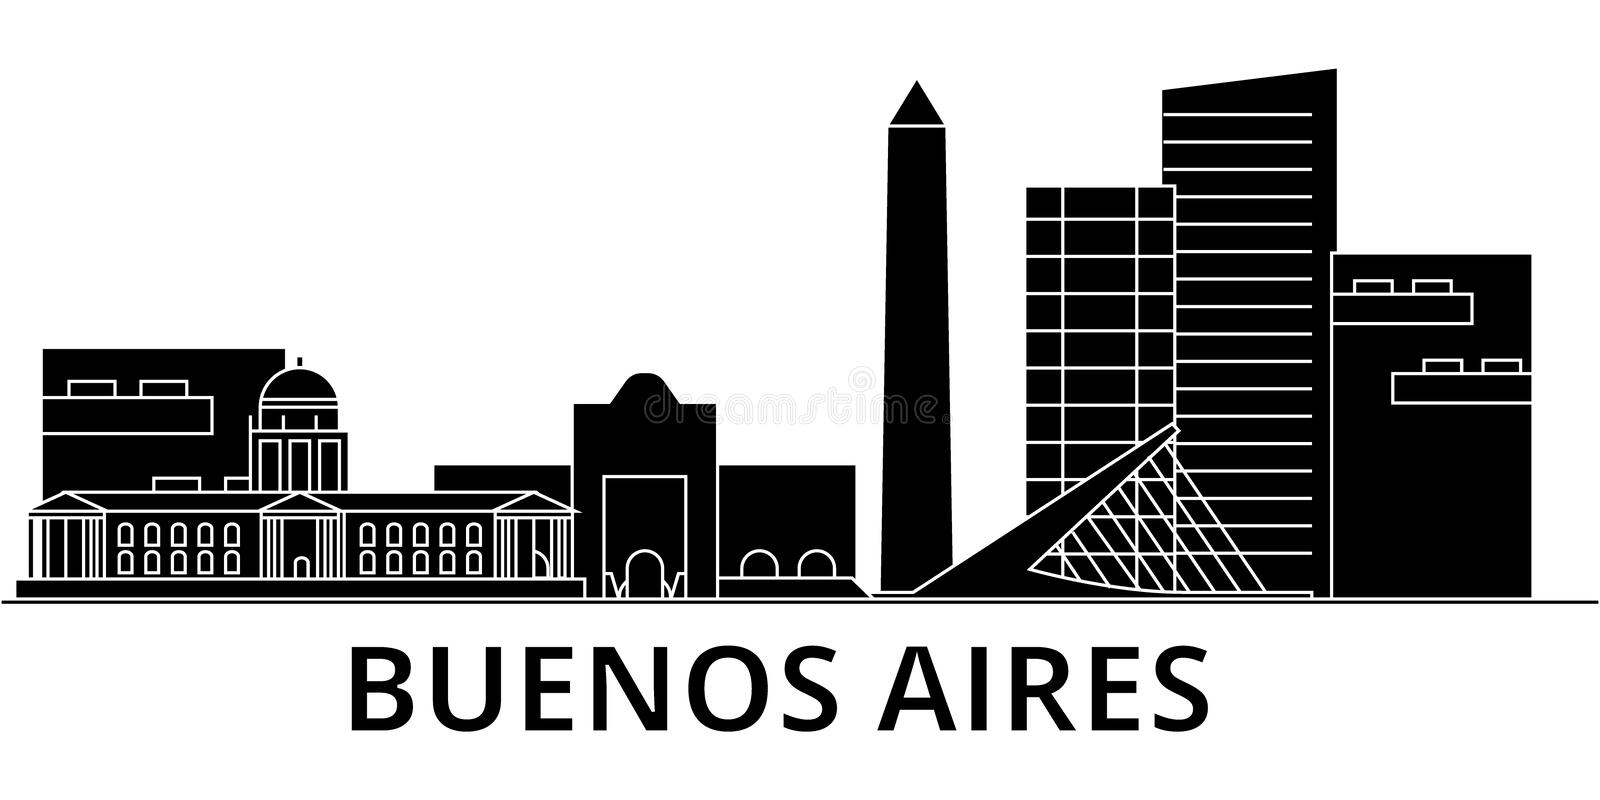 Buenos Airos architecture vector city skyline, travel cityscape with landmarks, buildings, isolated sights on background royalty free illustration